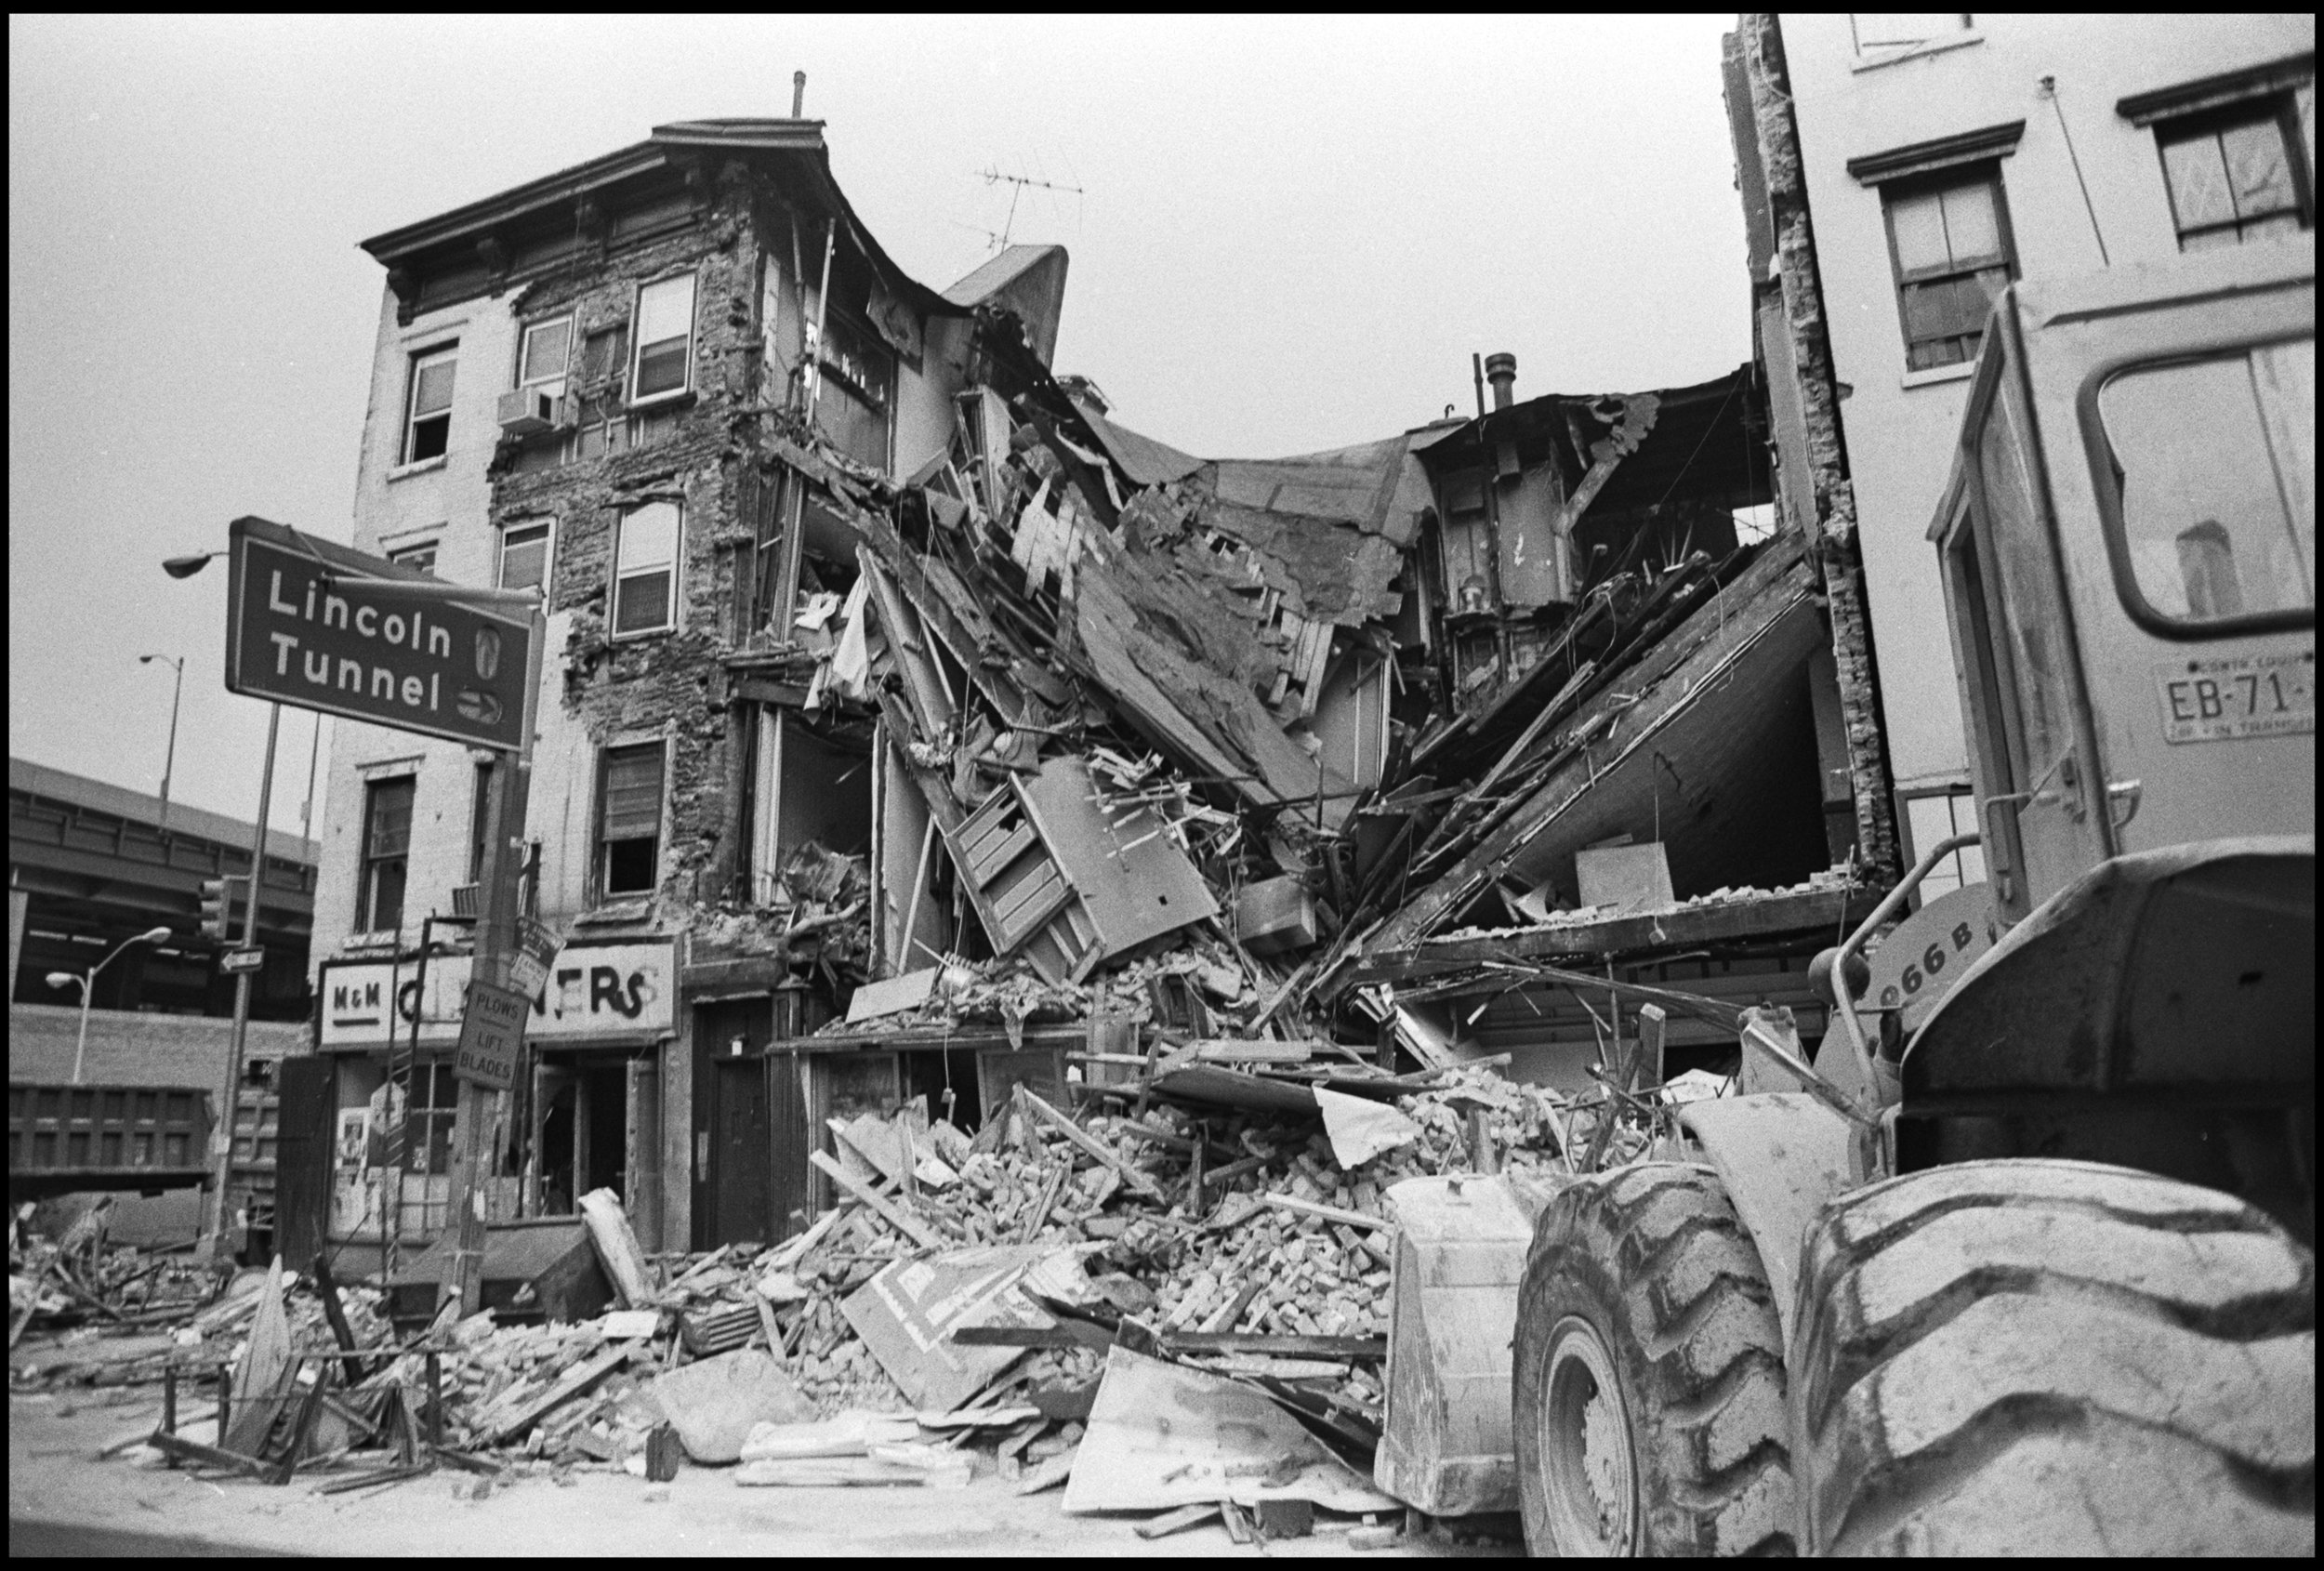 Collapsed building, 567, 569, 571 Ninth Avenue, Clinton/Hell's Kitchen. September 1981. Photographer unknown.